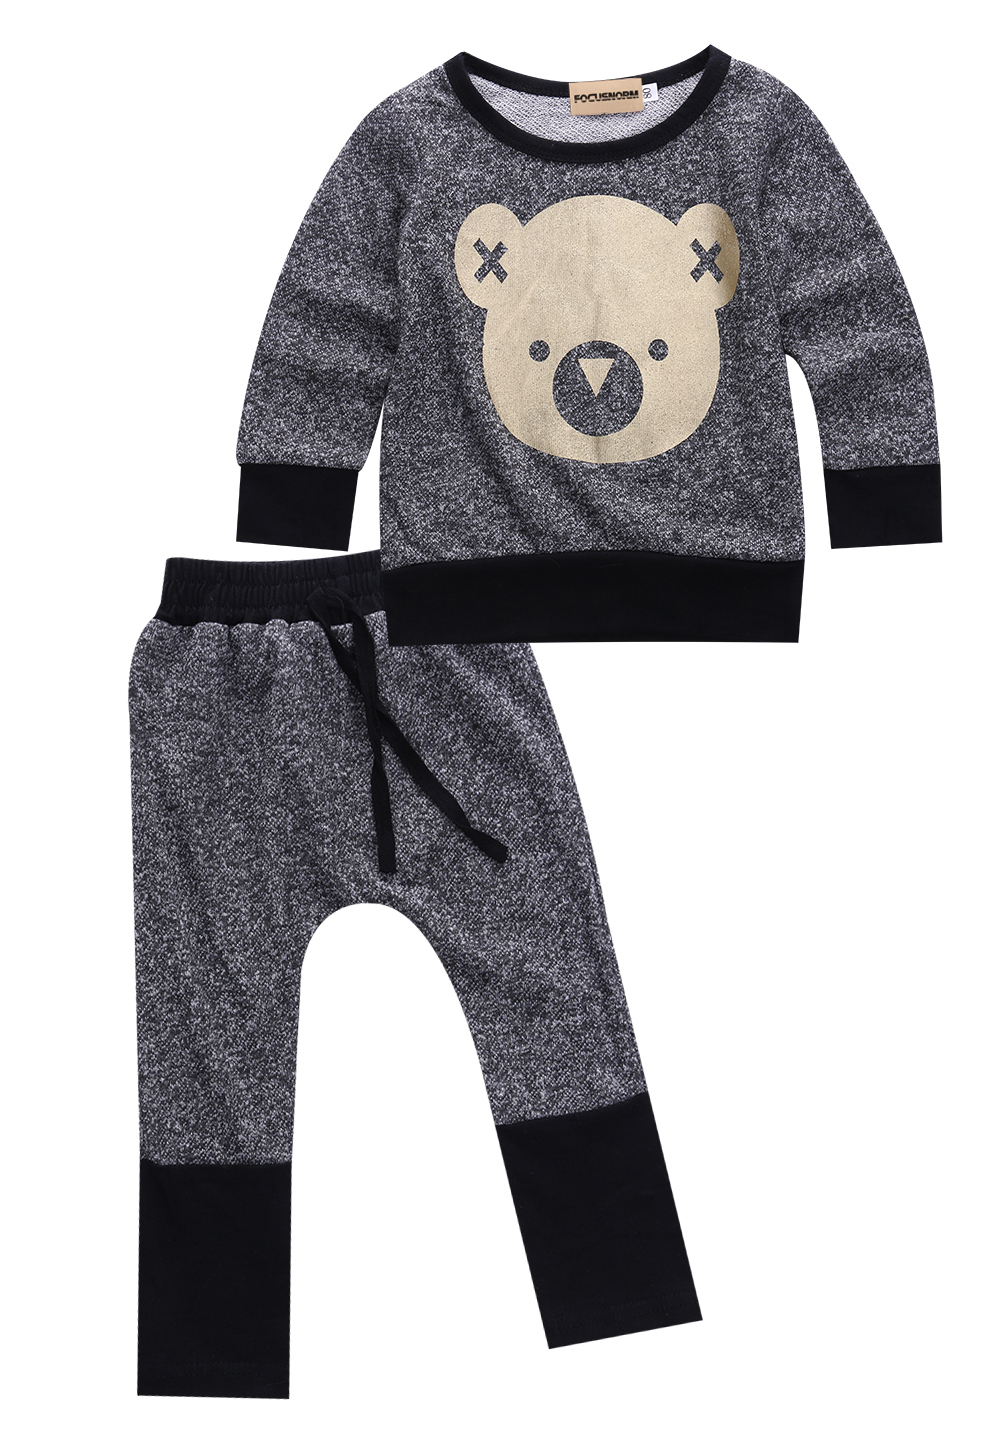 2pcs Toddler Infant Baby Boys Girls Long Sleeves Bear Printed Sweat Shirt +Pants Outfit Clothes Set Size 0-4